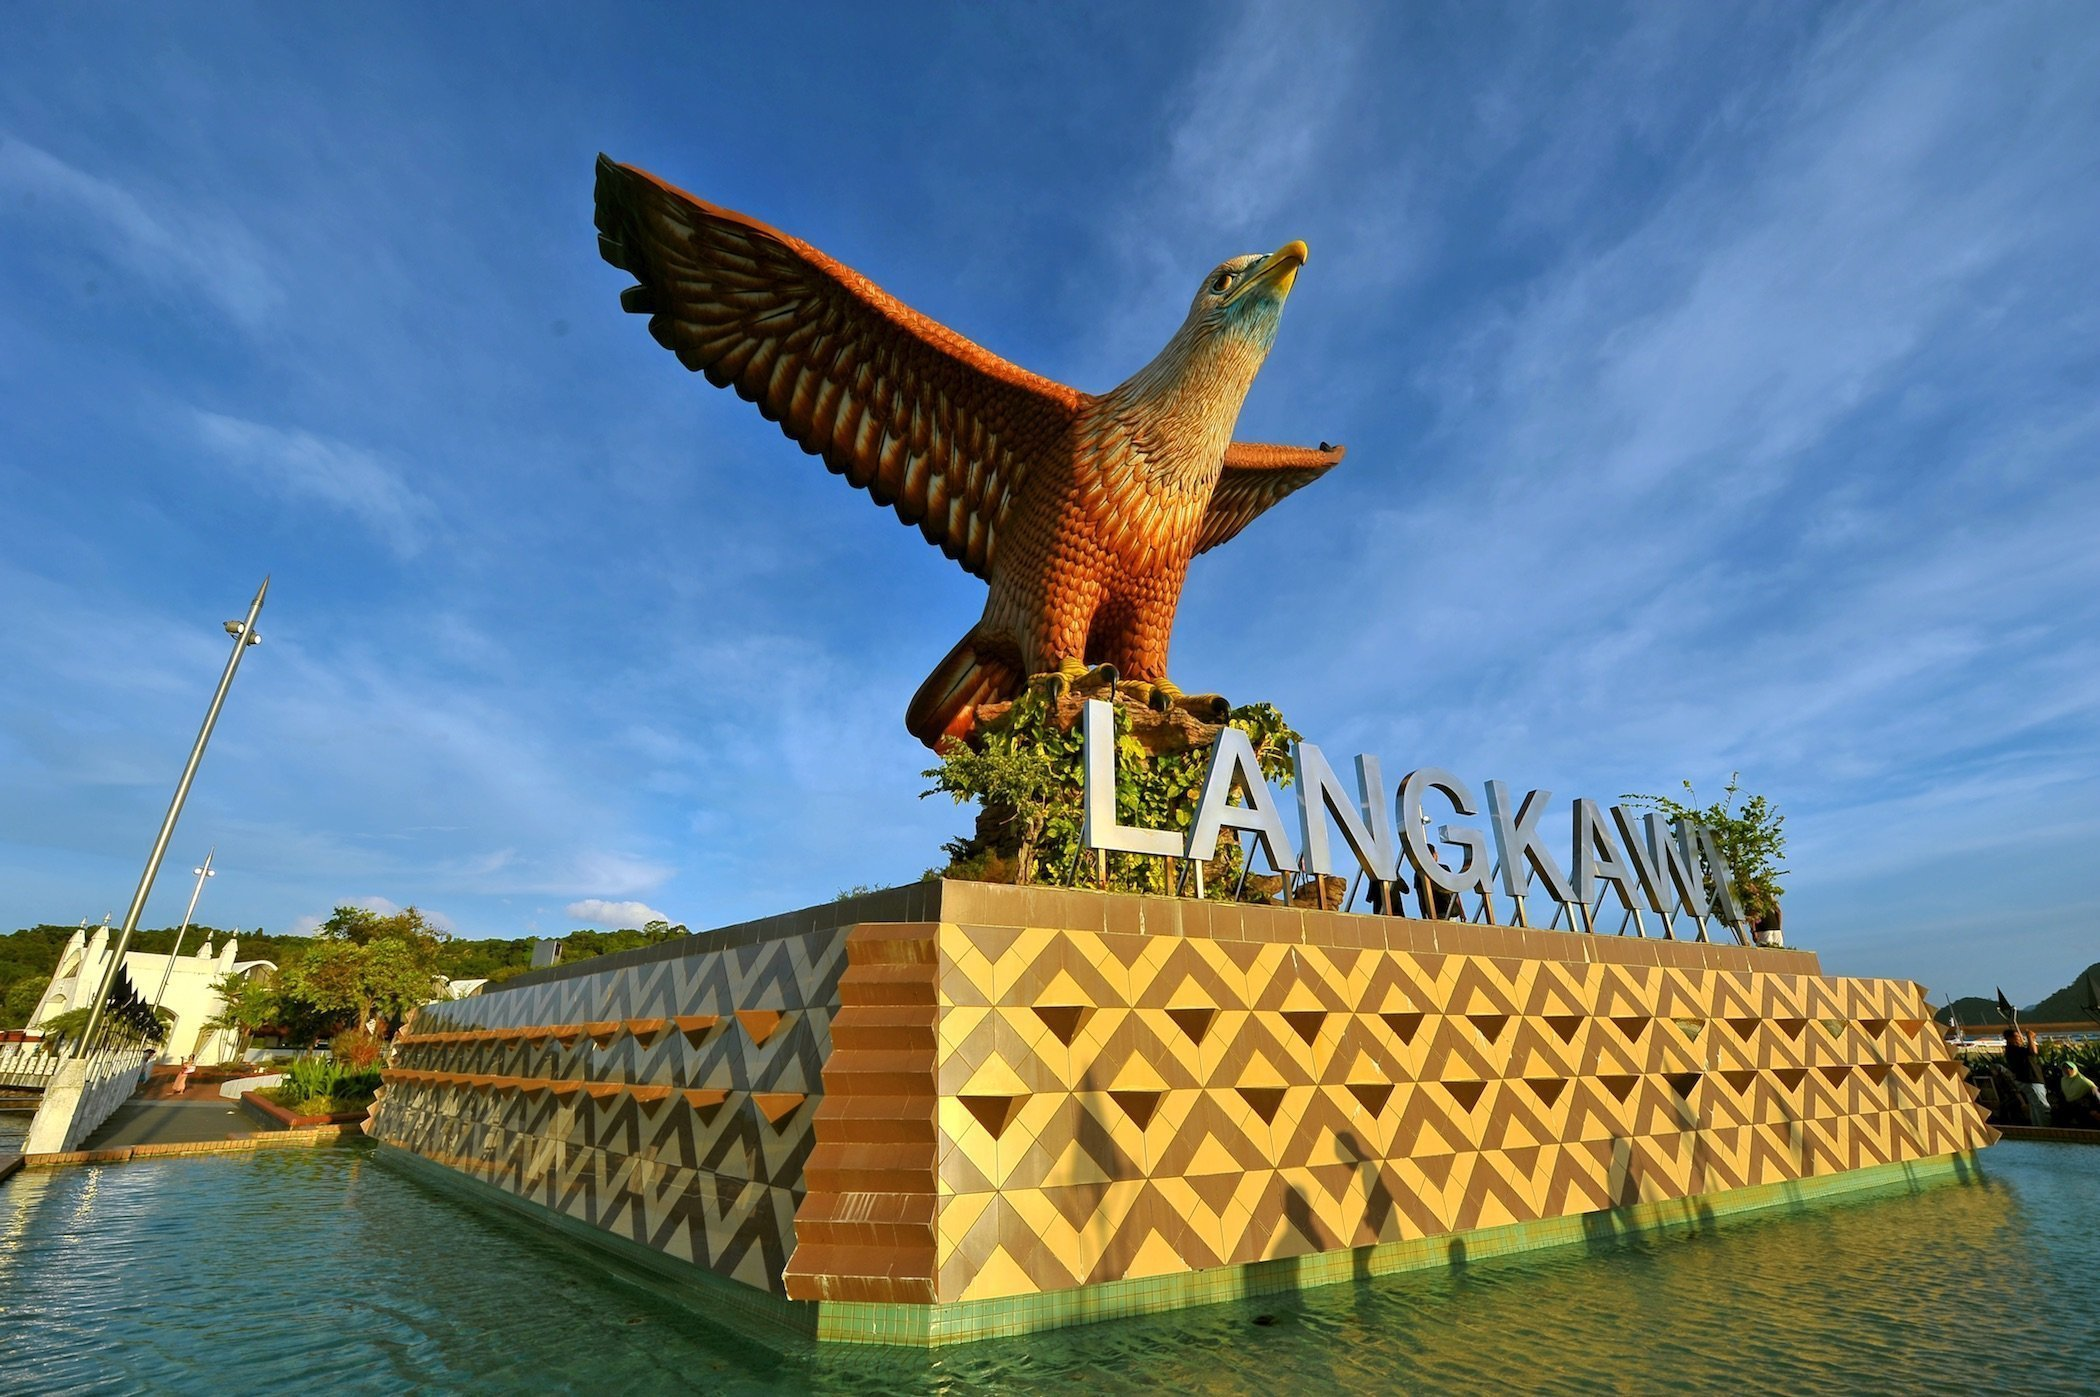 Monumento con aquila a Langkawi, Malesia